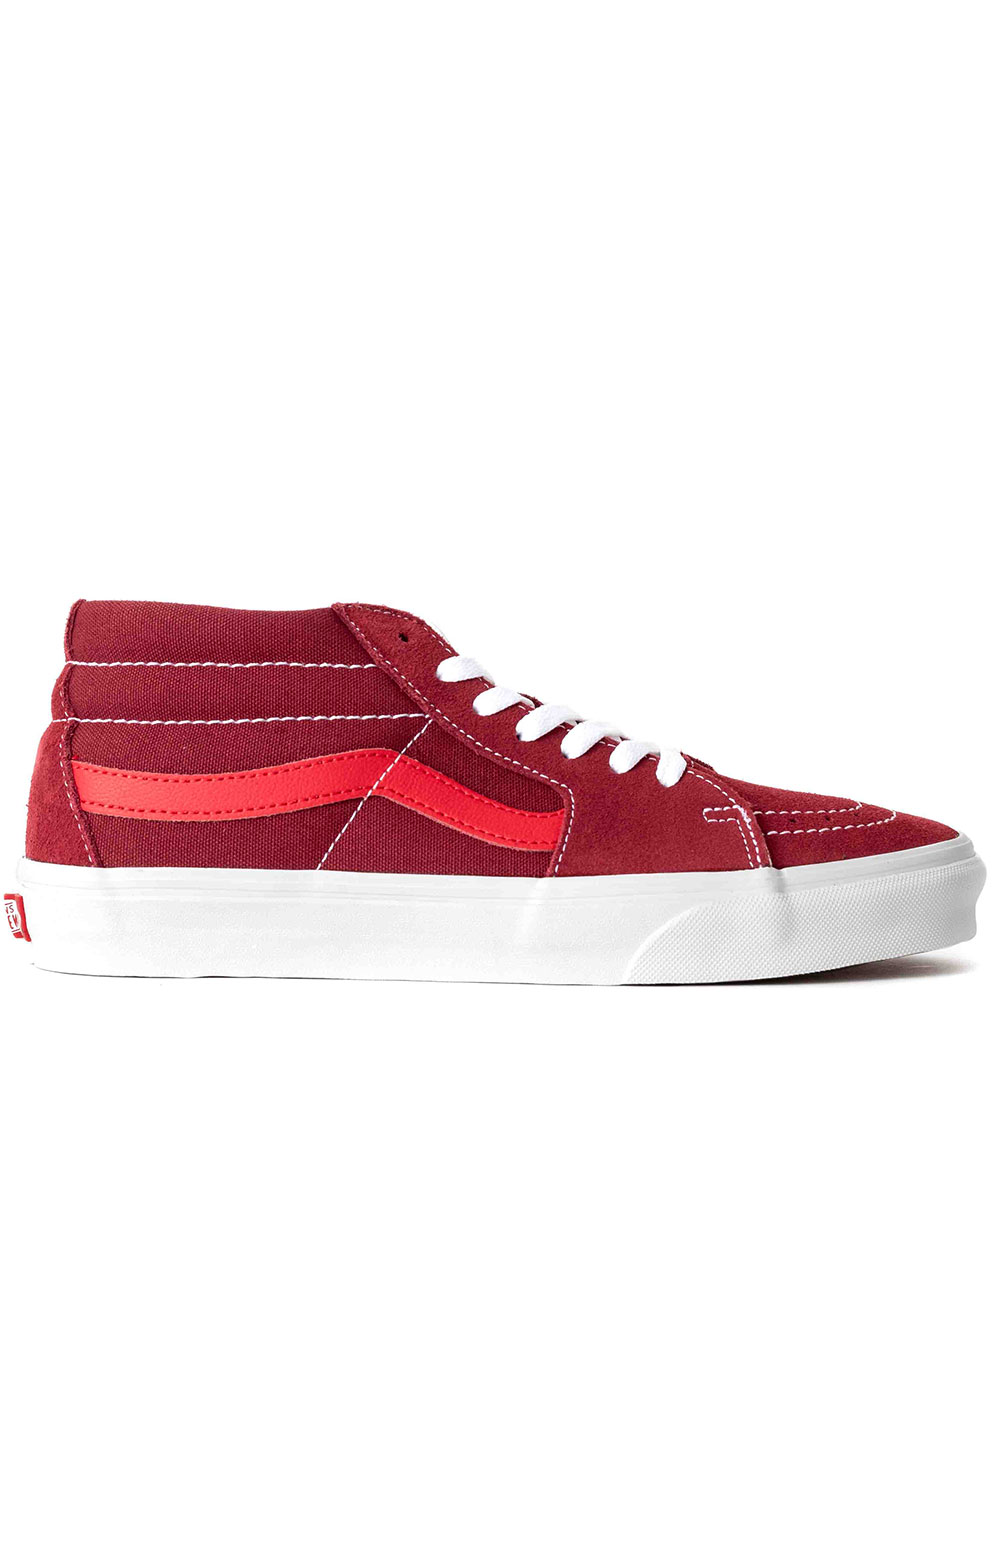 (WM3VXZ) Retro Sport Sk8-Mid Reissue Shoe - Biking Red